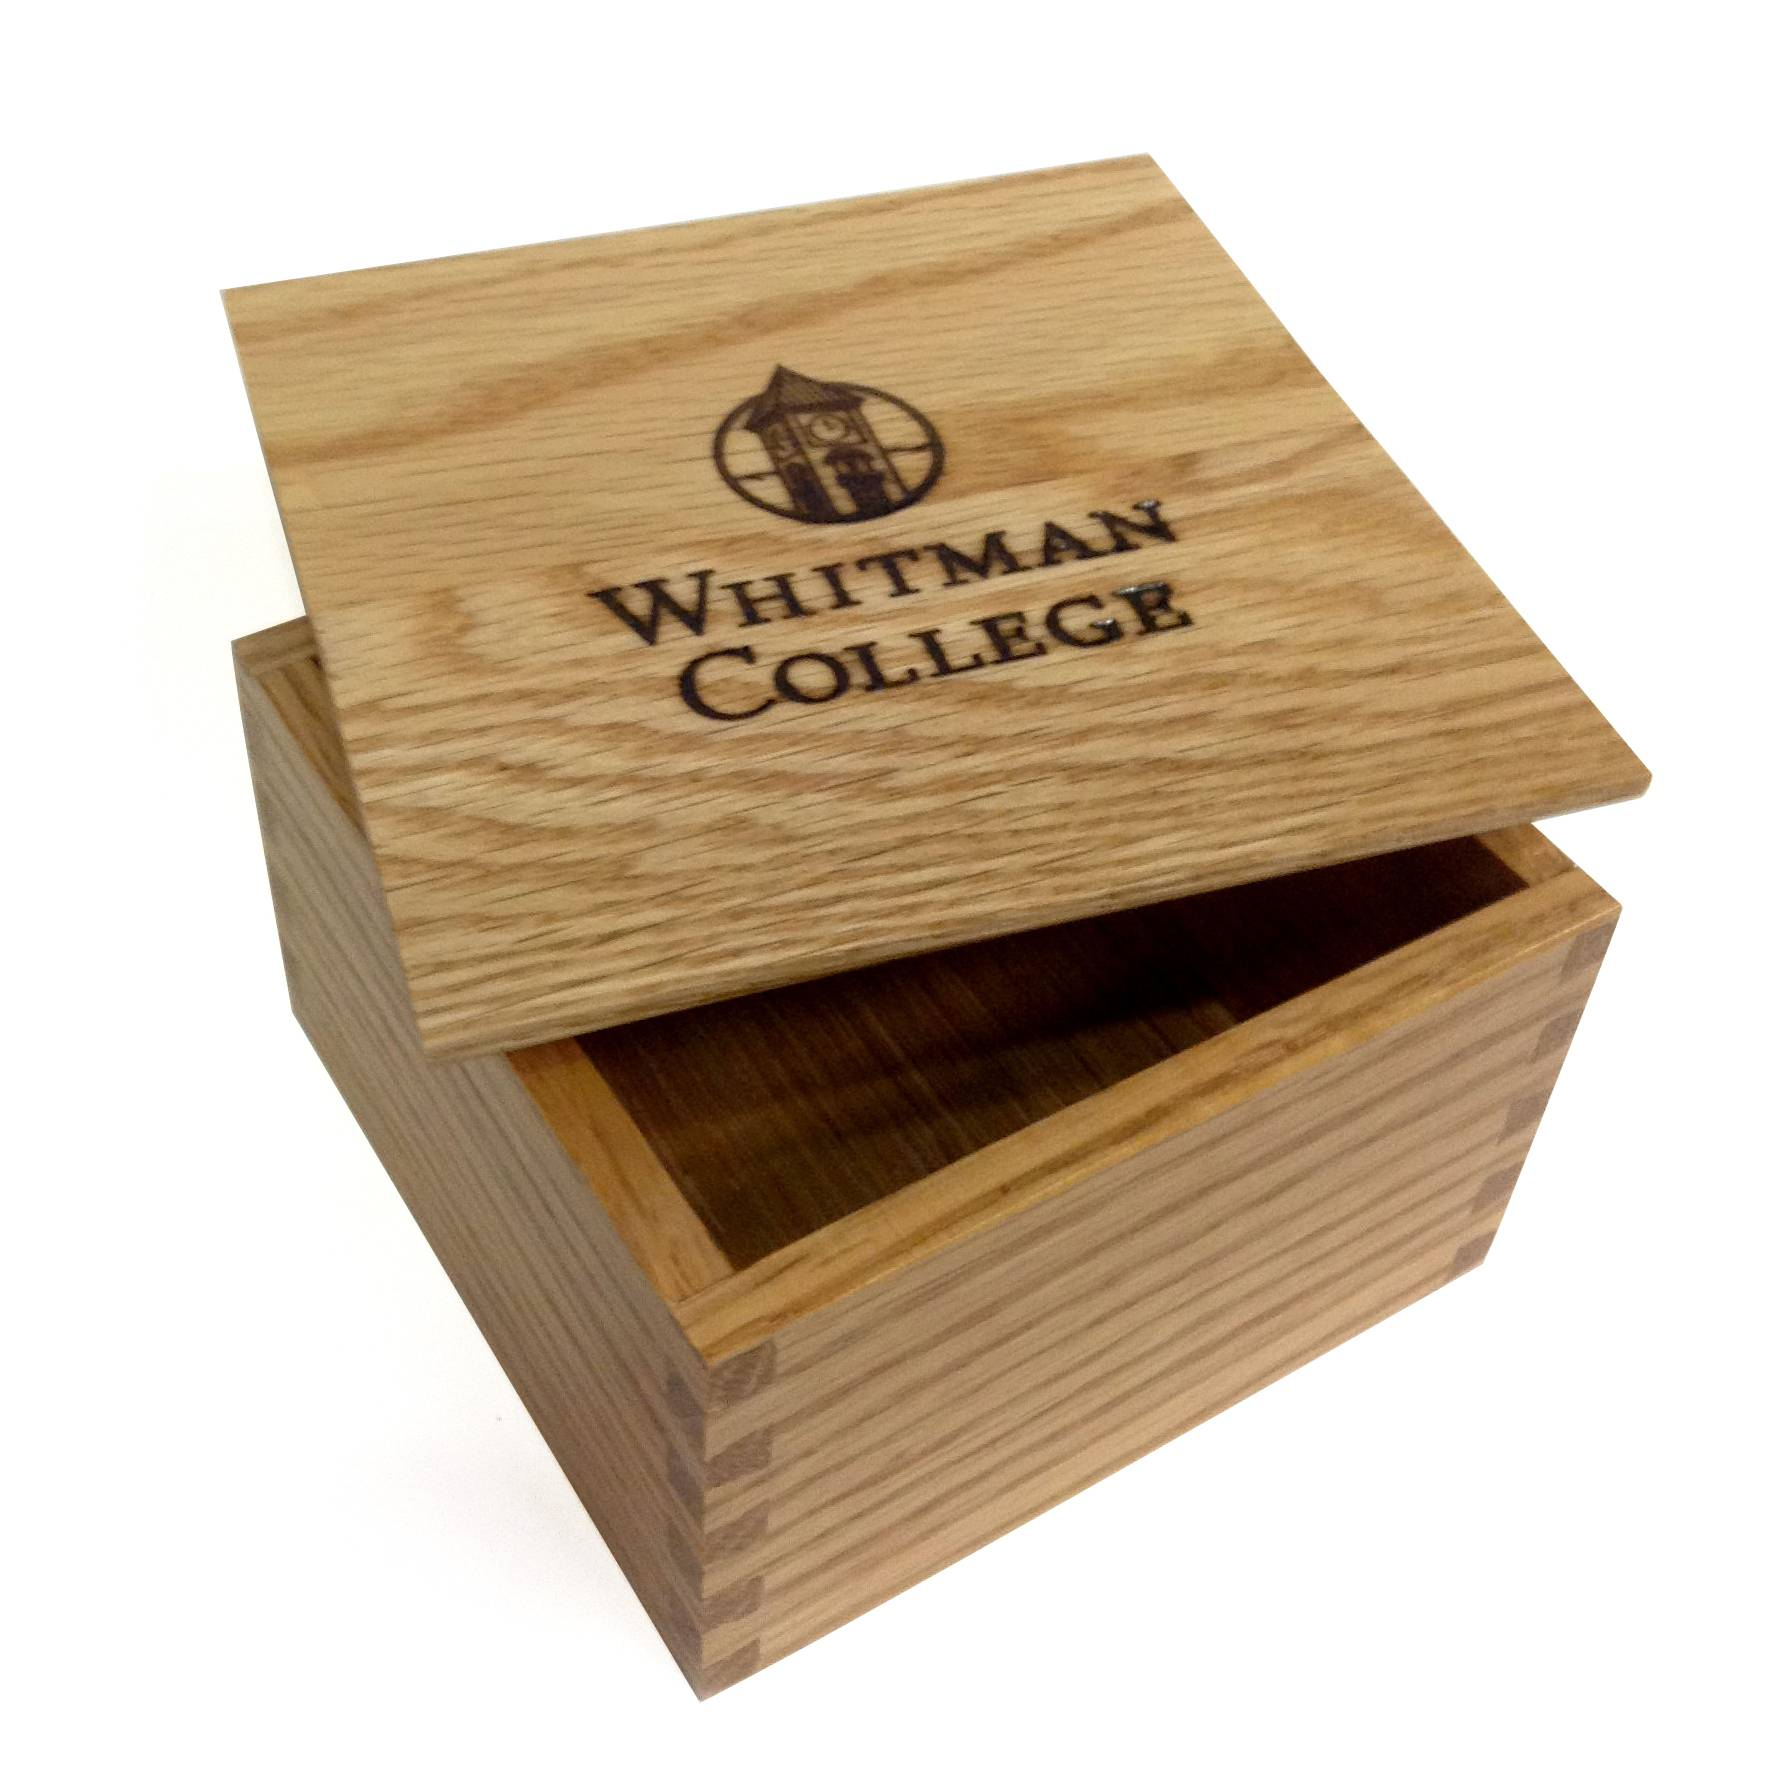 Lid box custom logo wooden box Featured Image